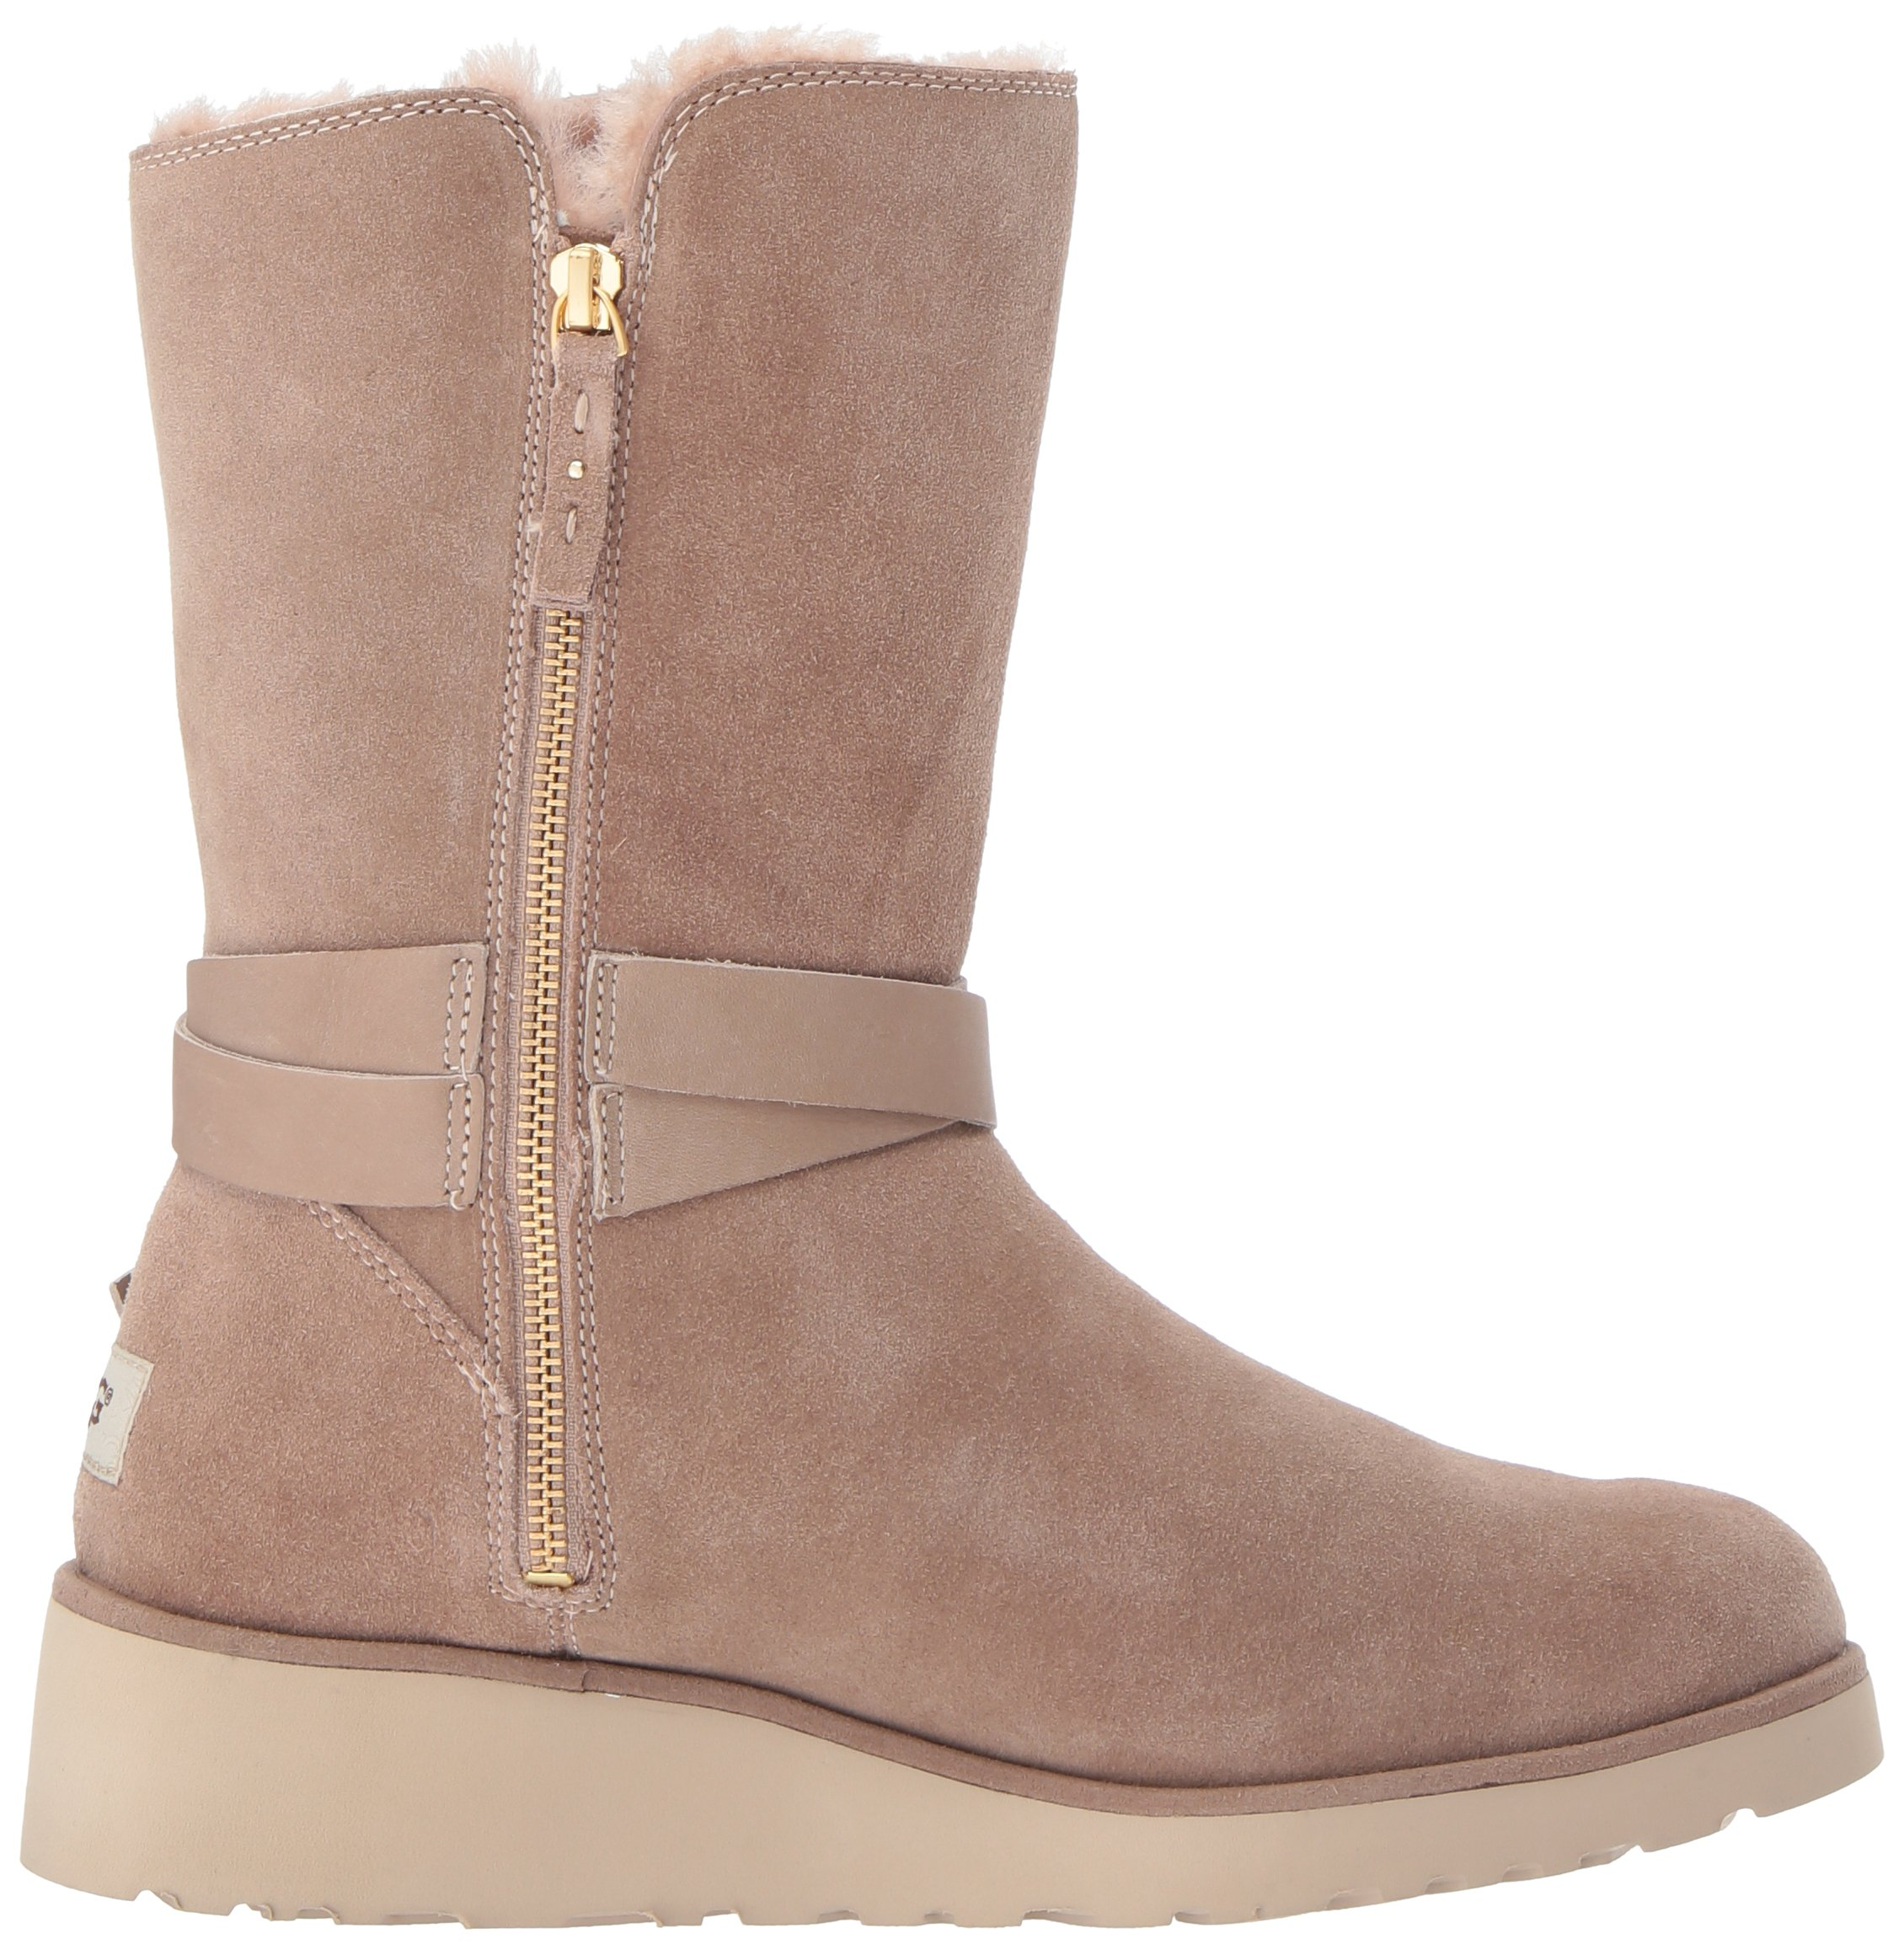 UGG Women's Aysel Winter Boot, Fawn, 7.5 M US by UGG (Image #7)